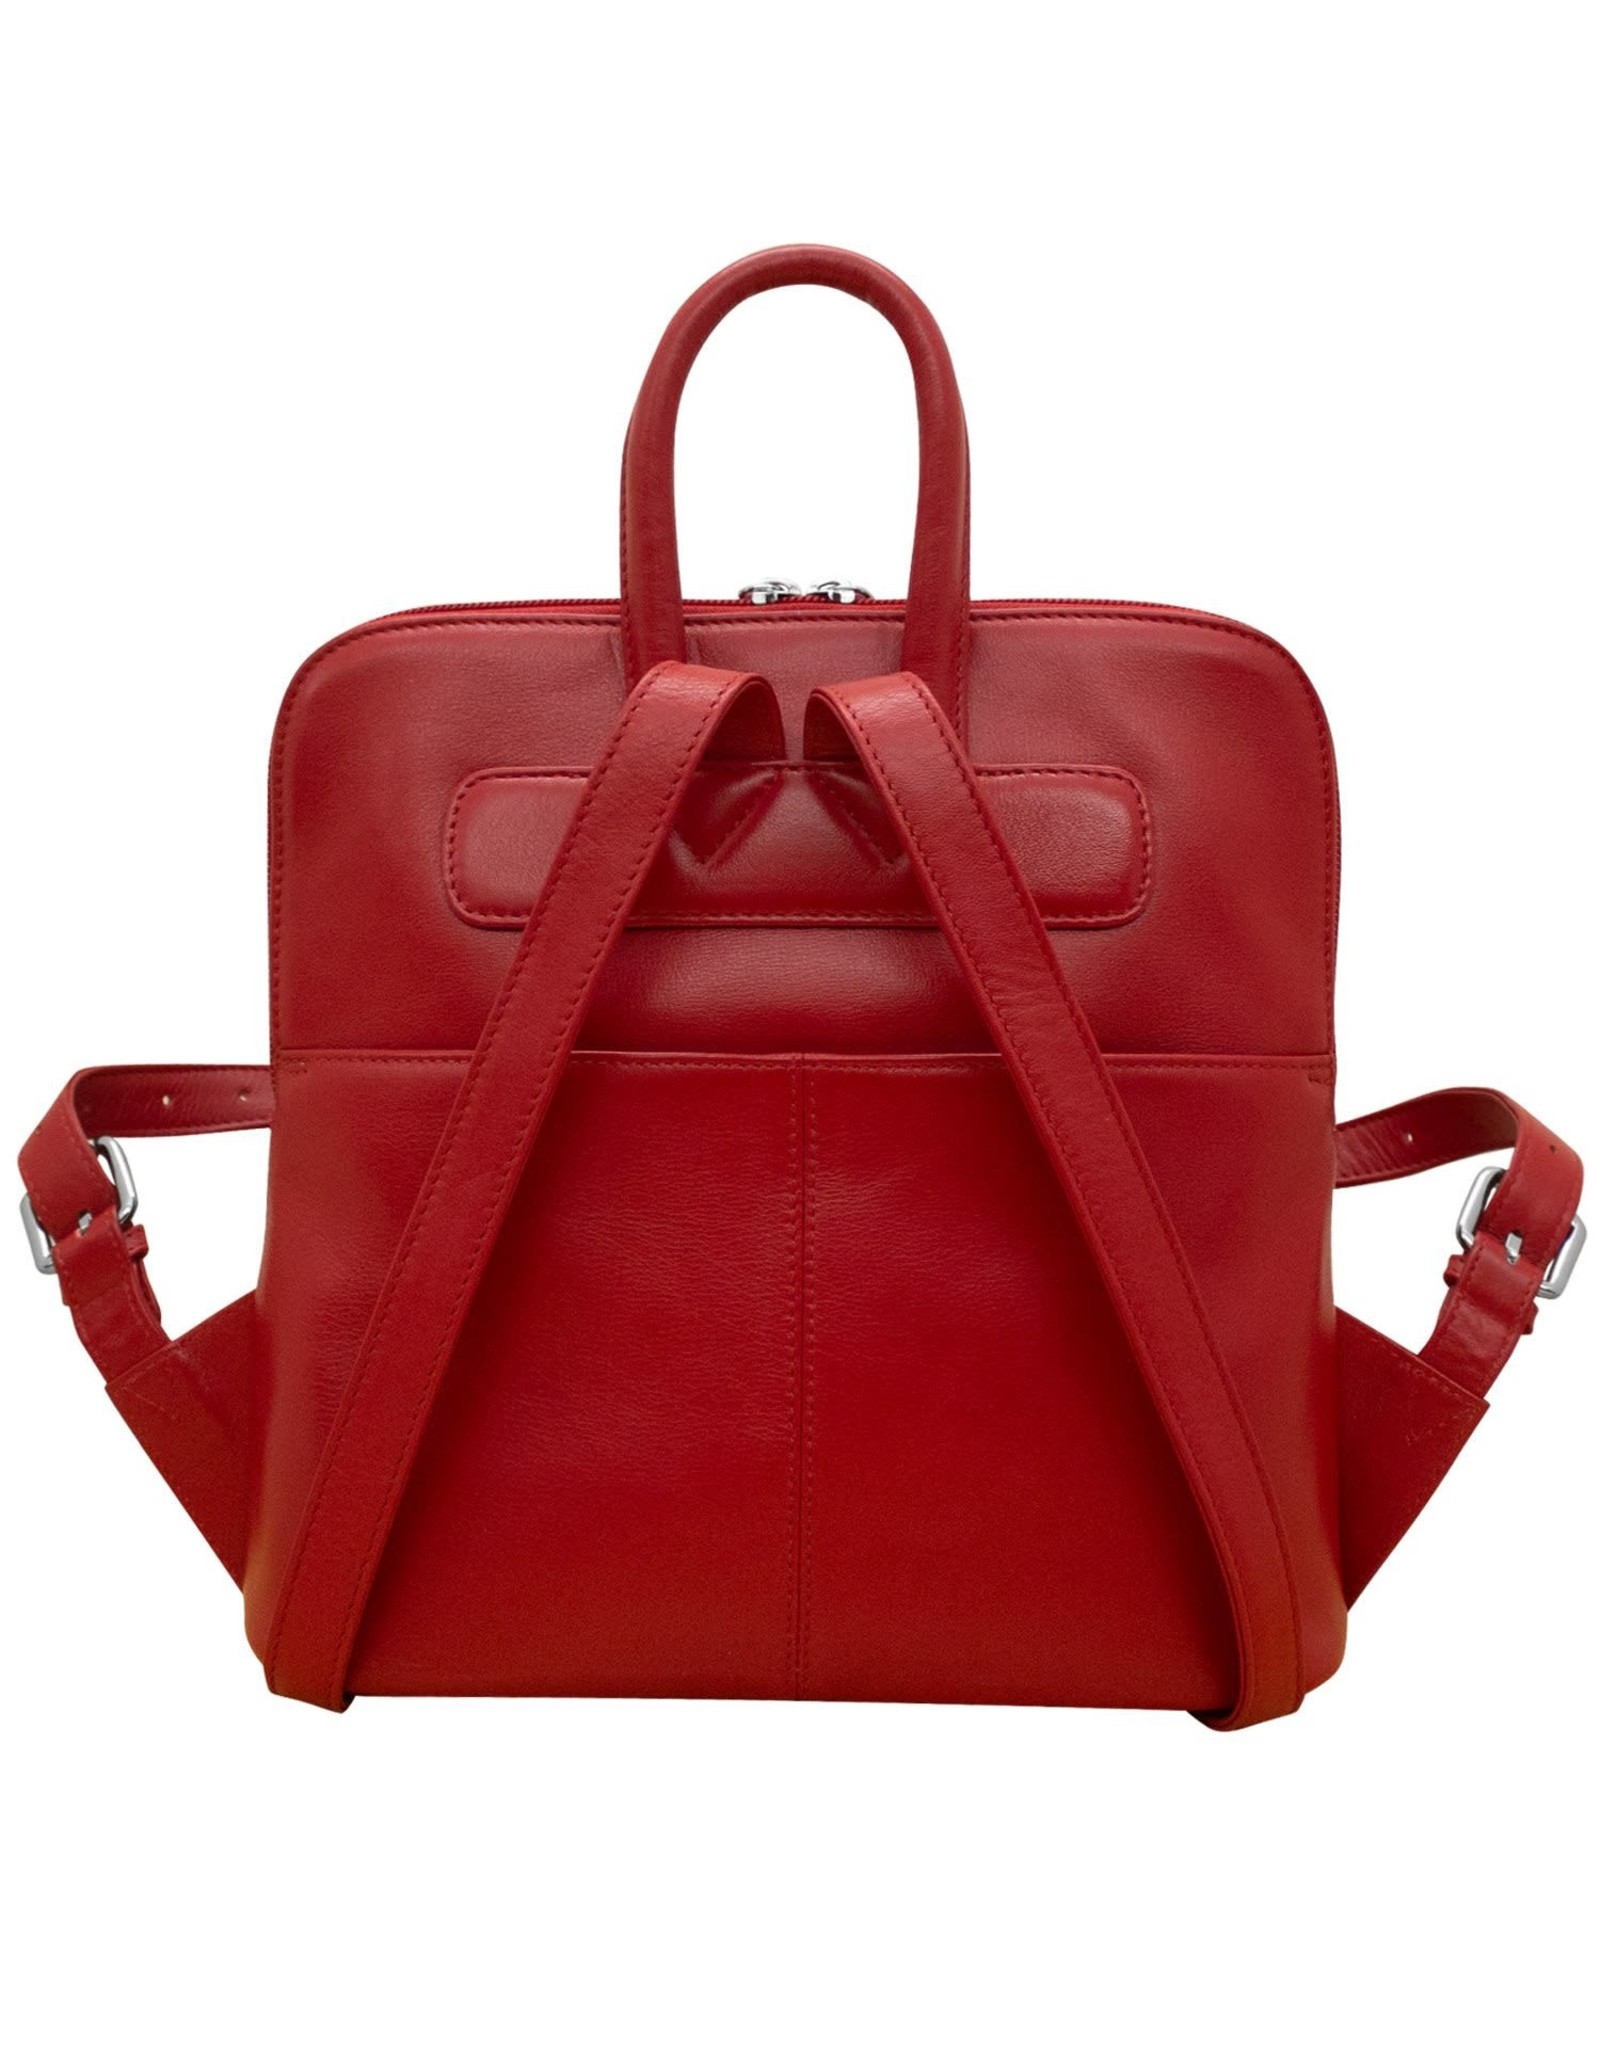 Leather Handbags and Accessories 6503 Red - Small Backpack